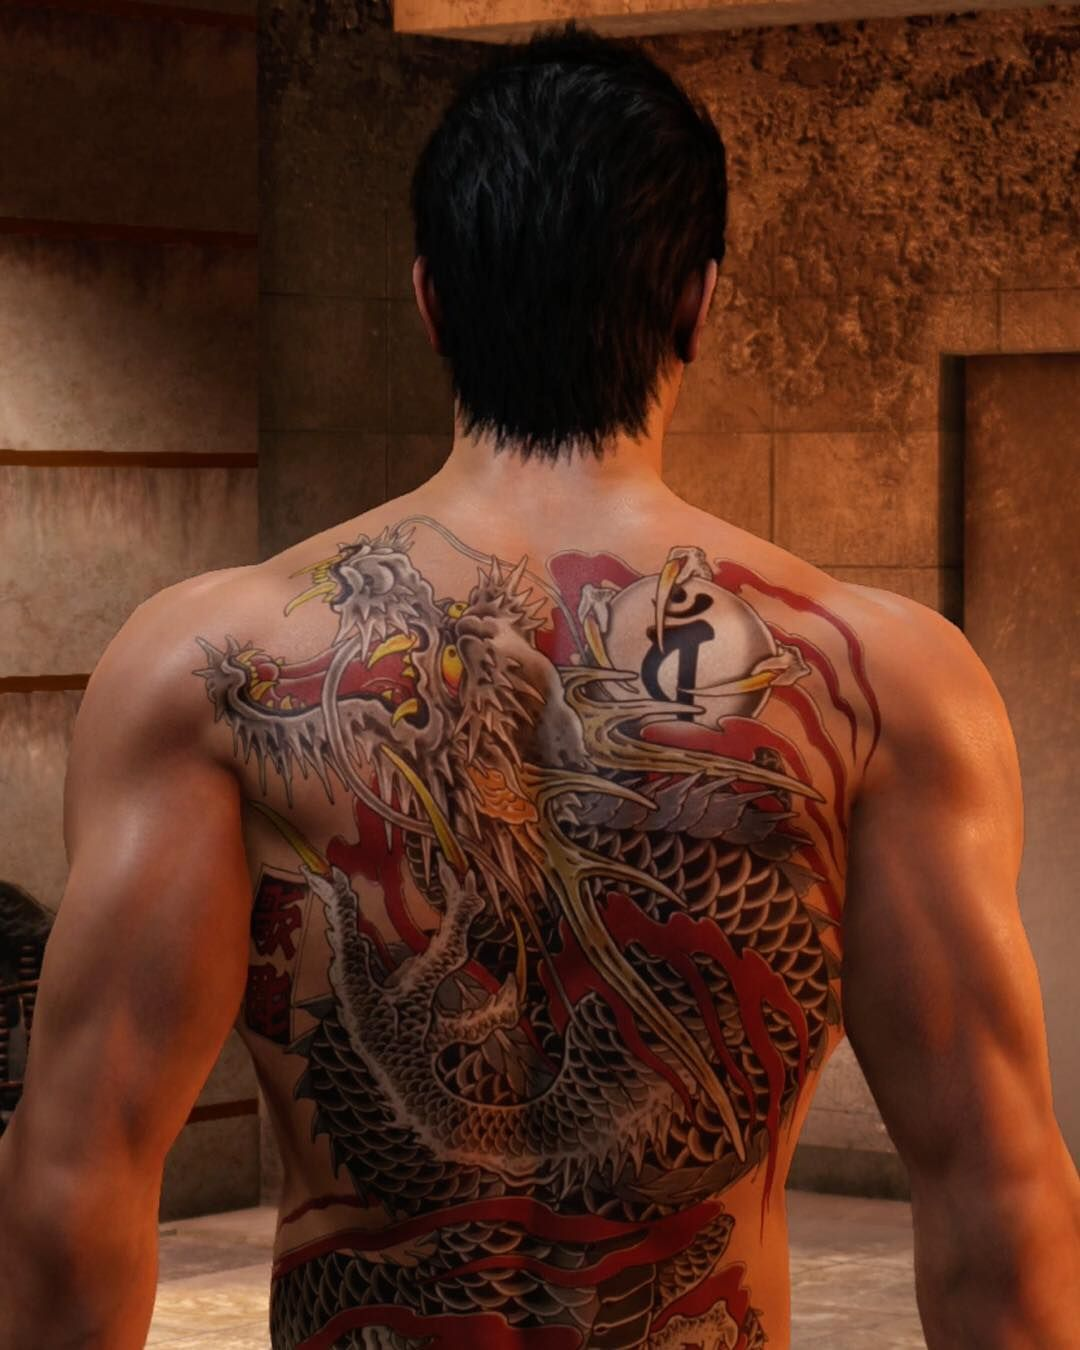 A Closer Look At The Intricacies Of Kiryu S Tattoos Designed By